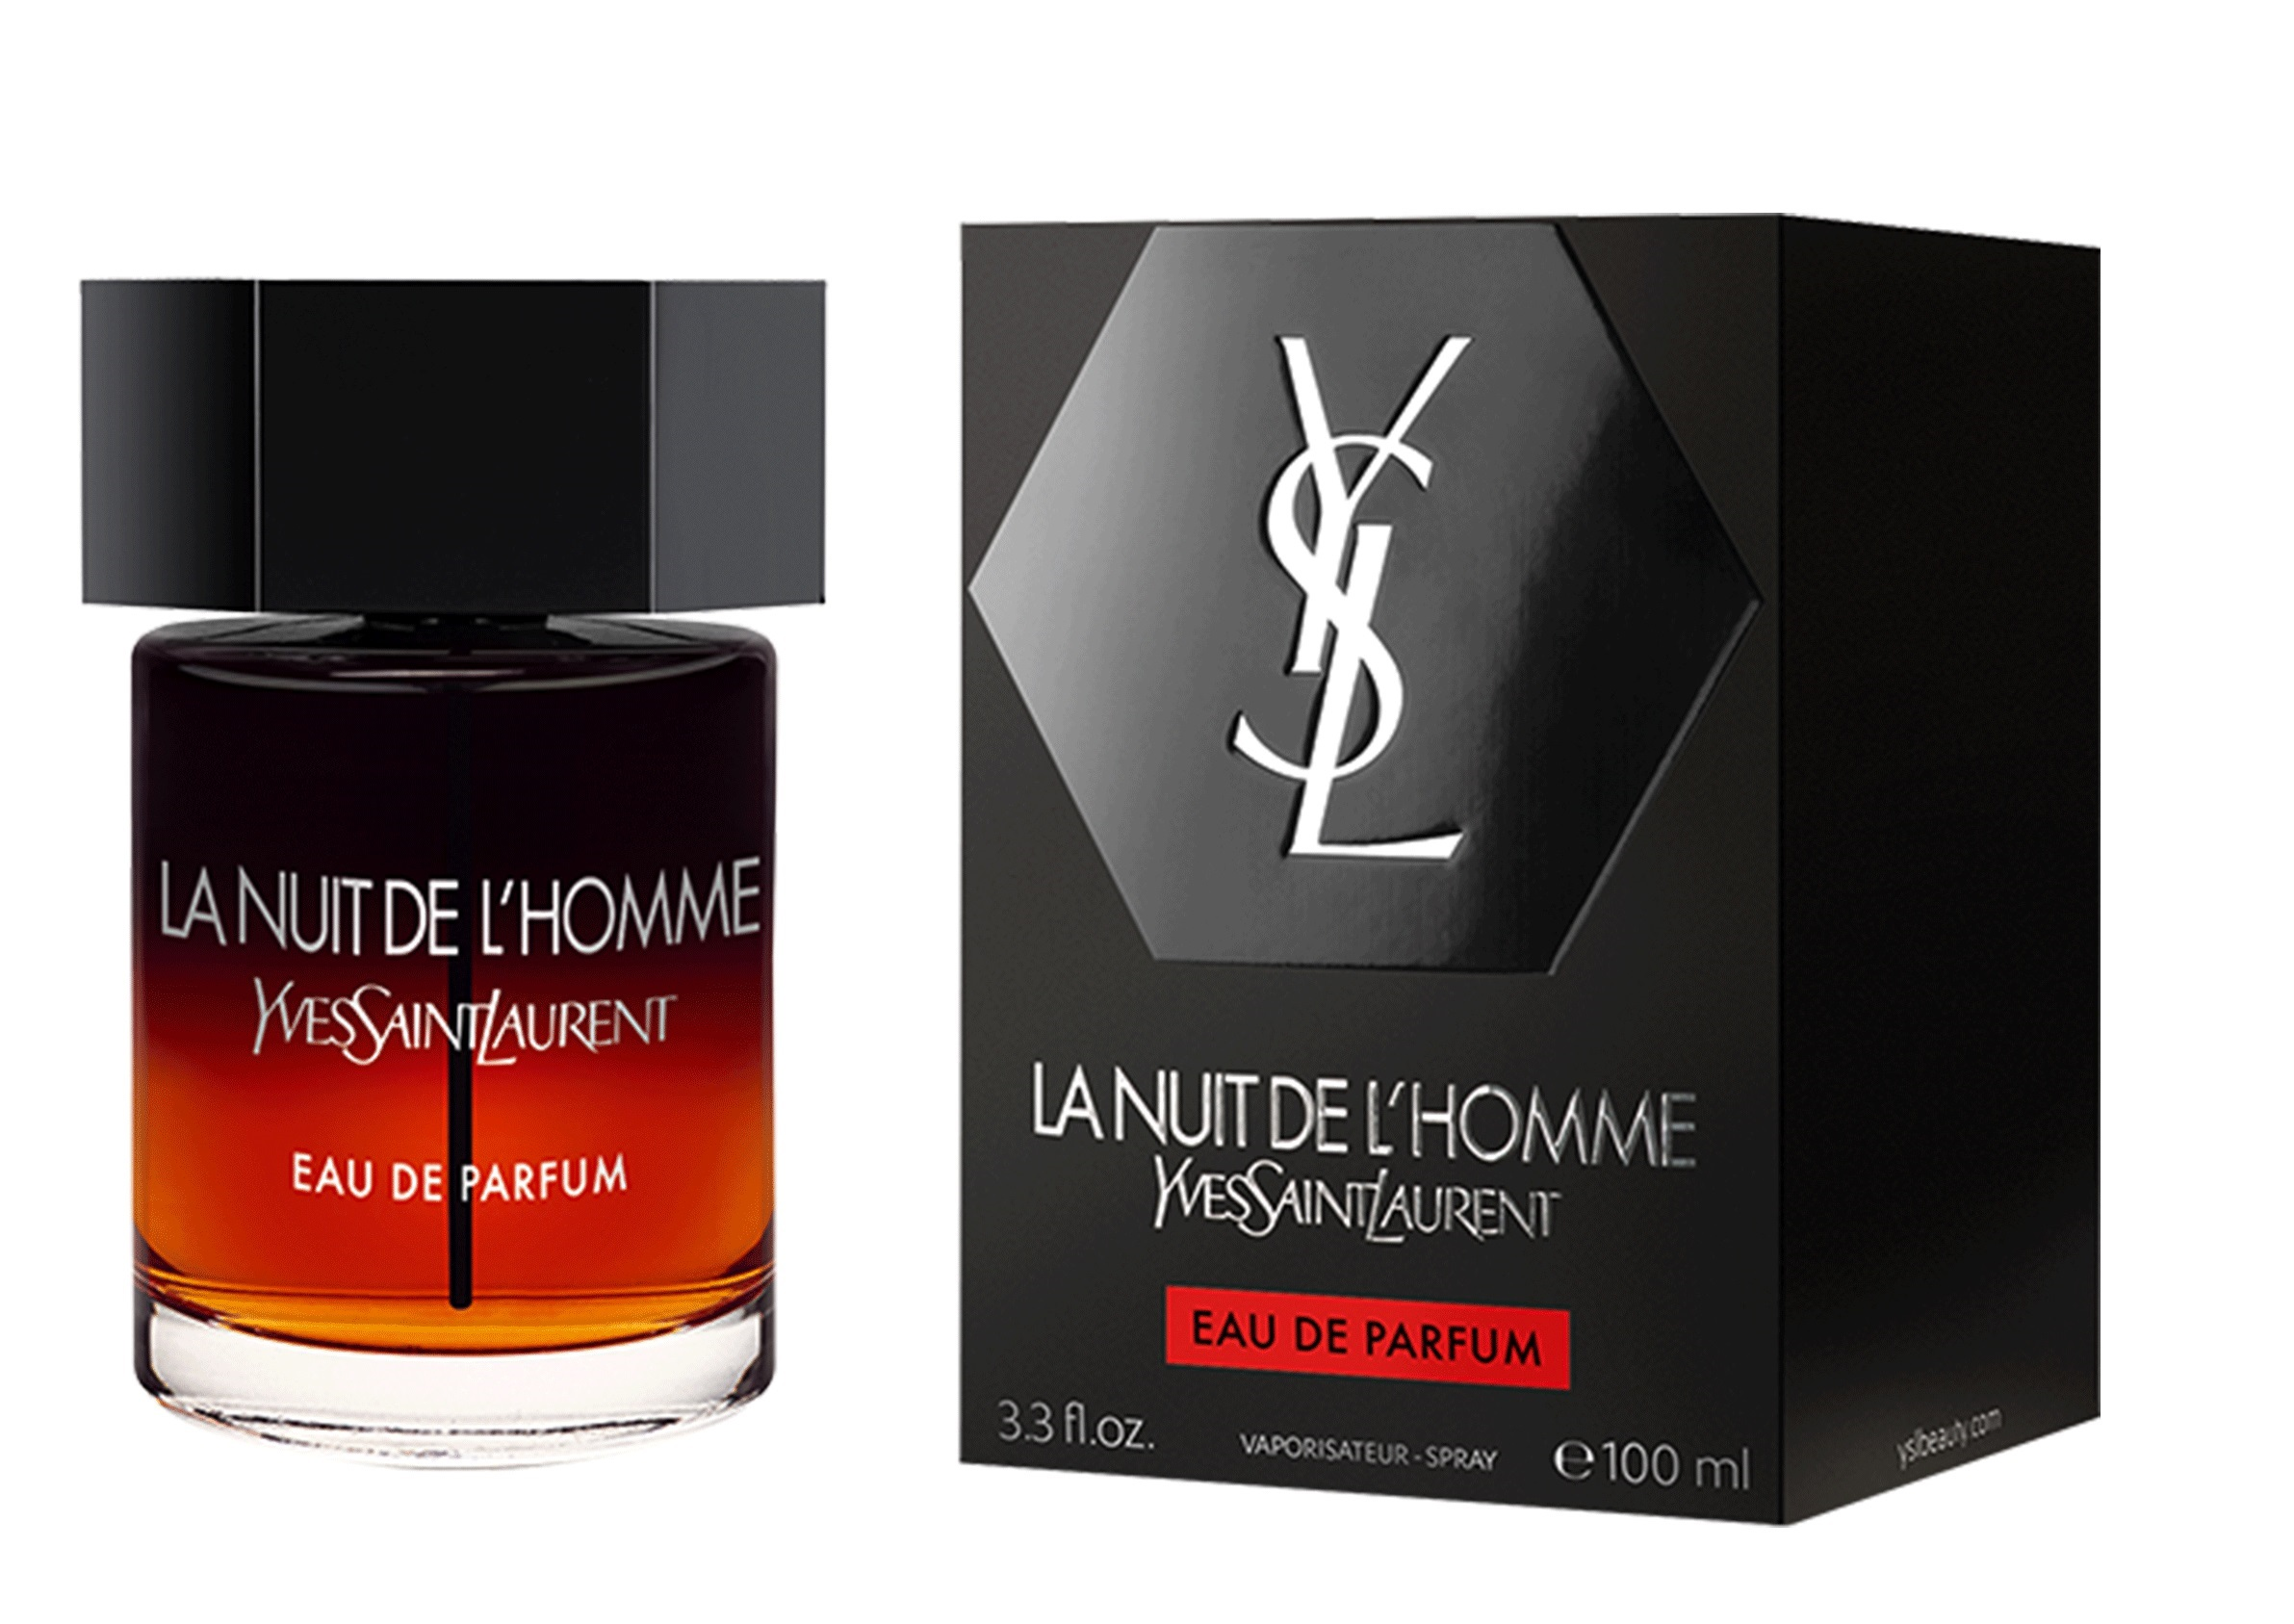 la nuit de l 39 homme eau de parfum yves saint laurent. Black Bedroom Furniture Sets. Home Design Ideas